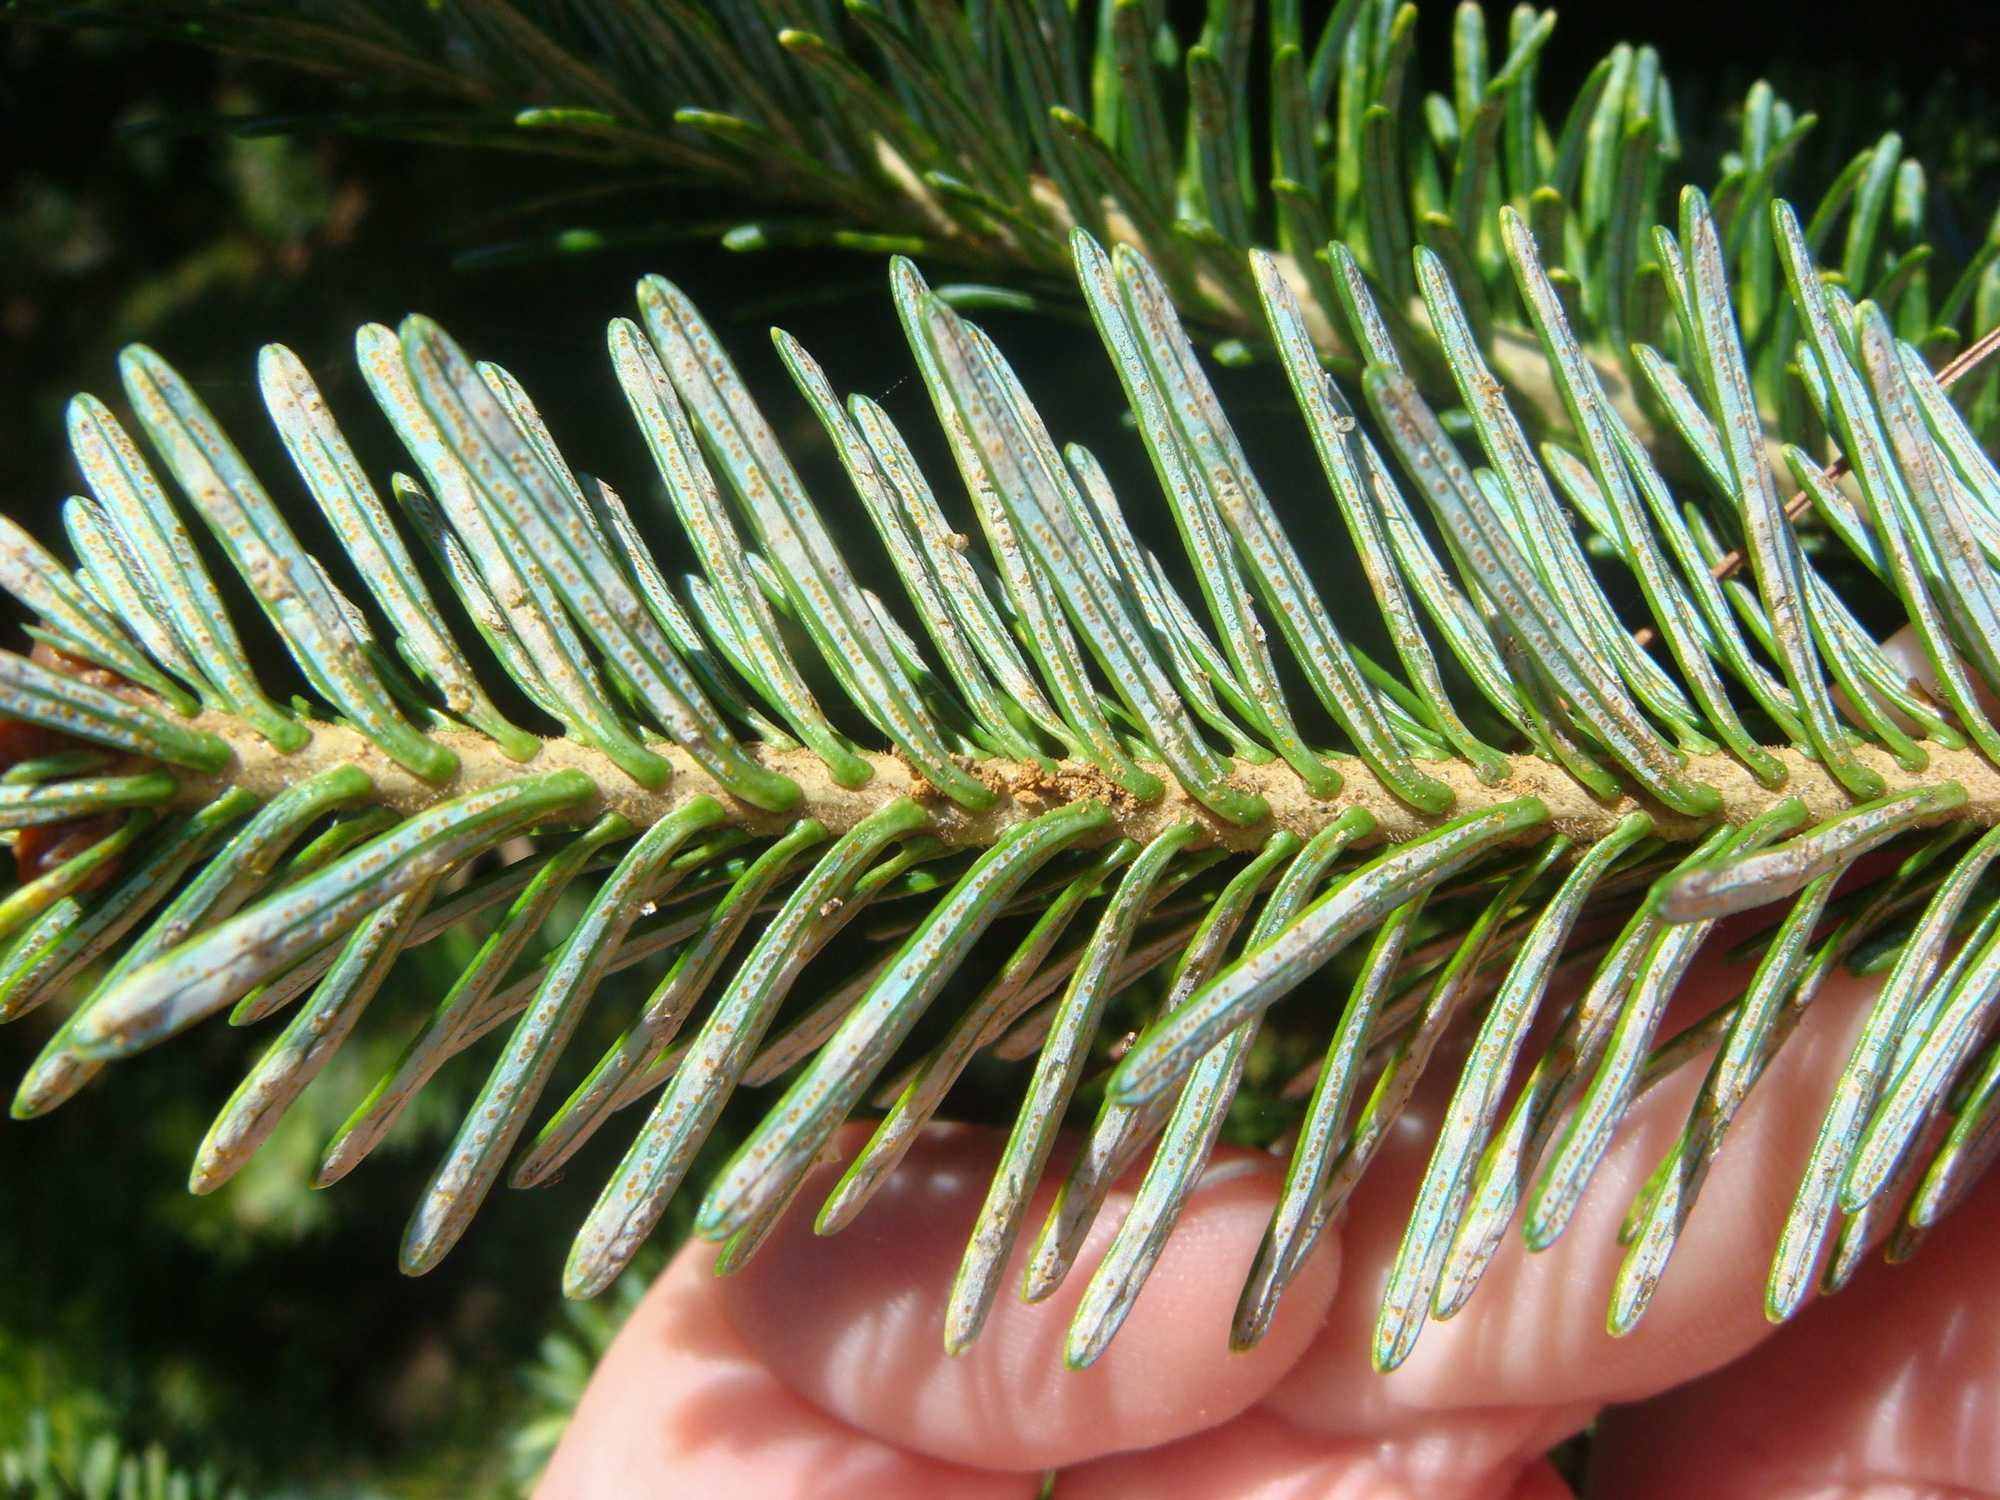 A+pine+tree+infected+with+cryptomeria.+Photo+courtesy+of+Jill+Sidebottom.